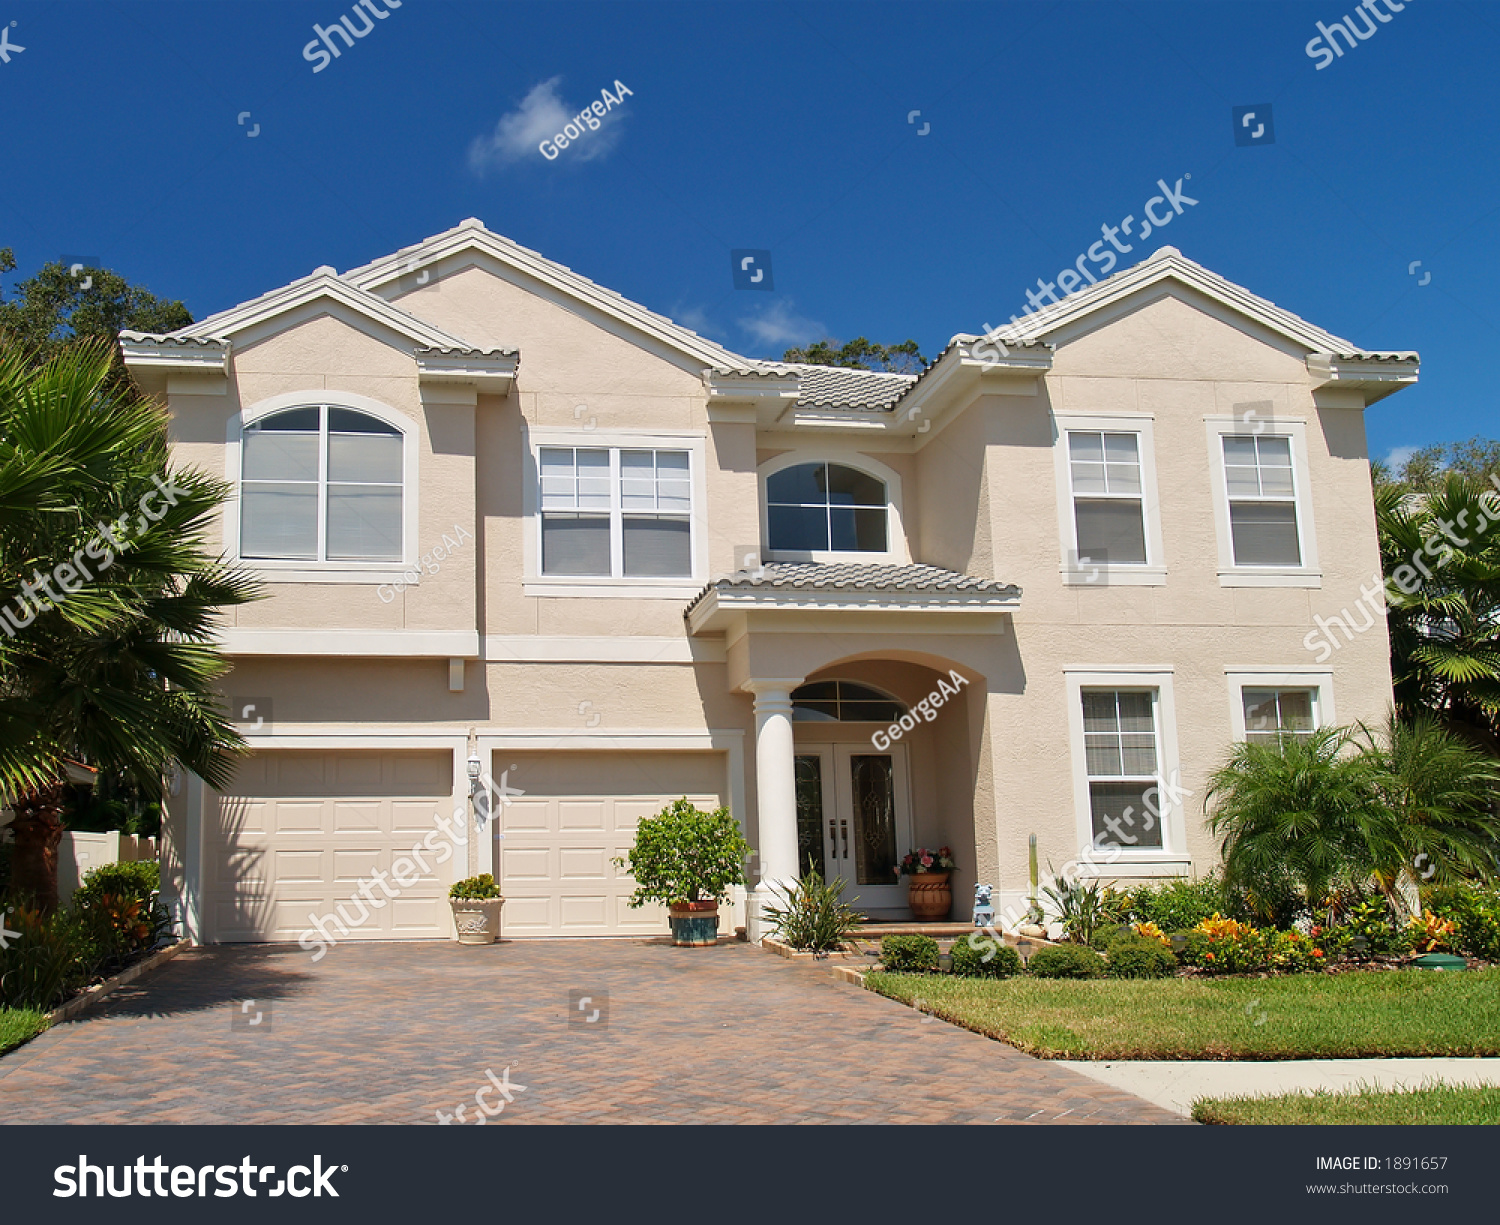 Very simple functional luxury house stock photo 1891657 for Simple luxury homes